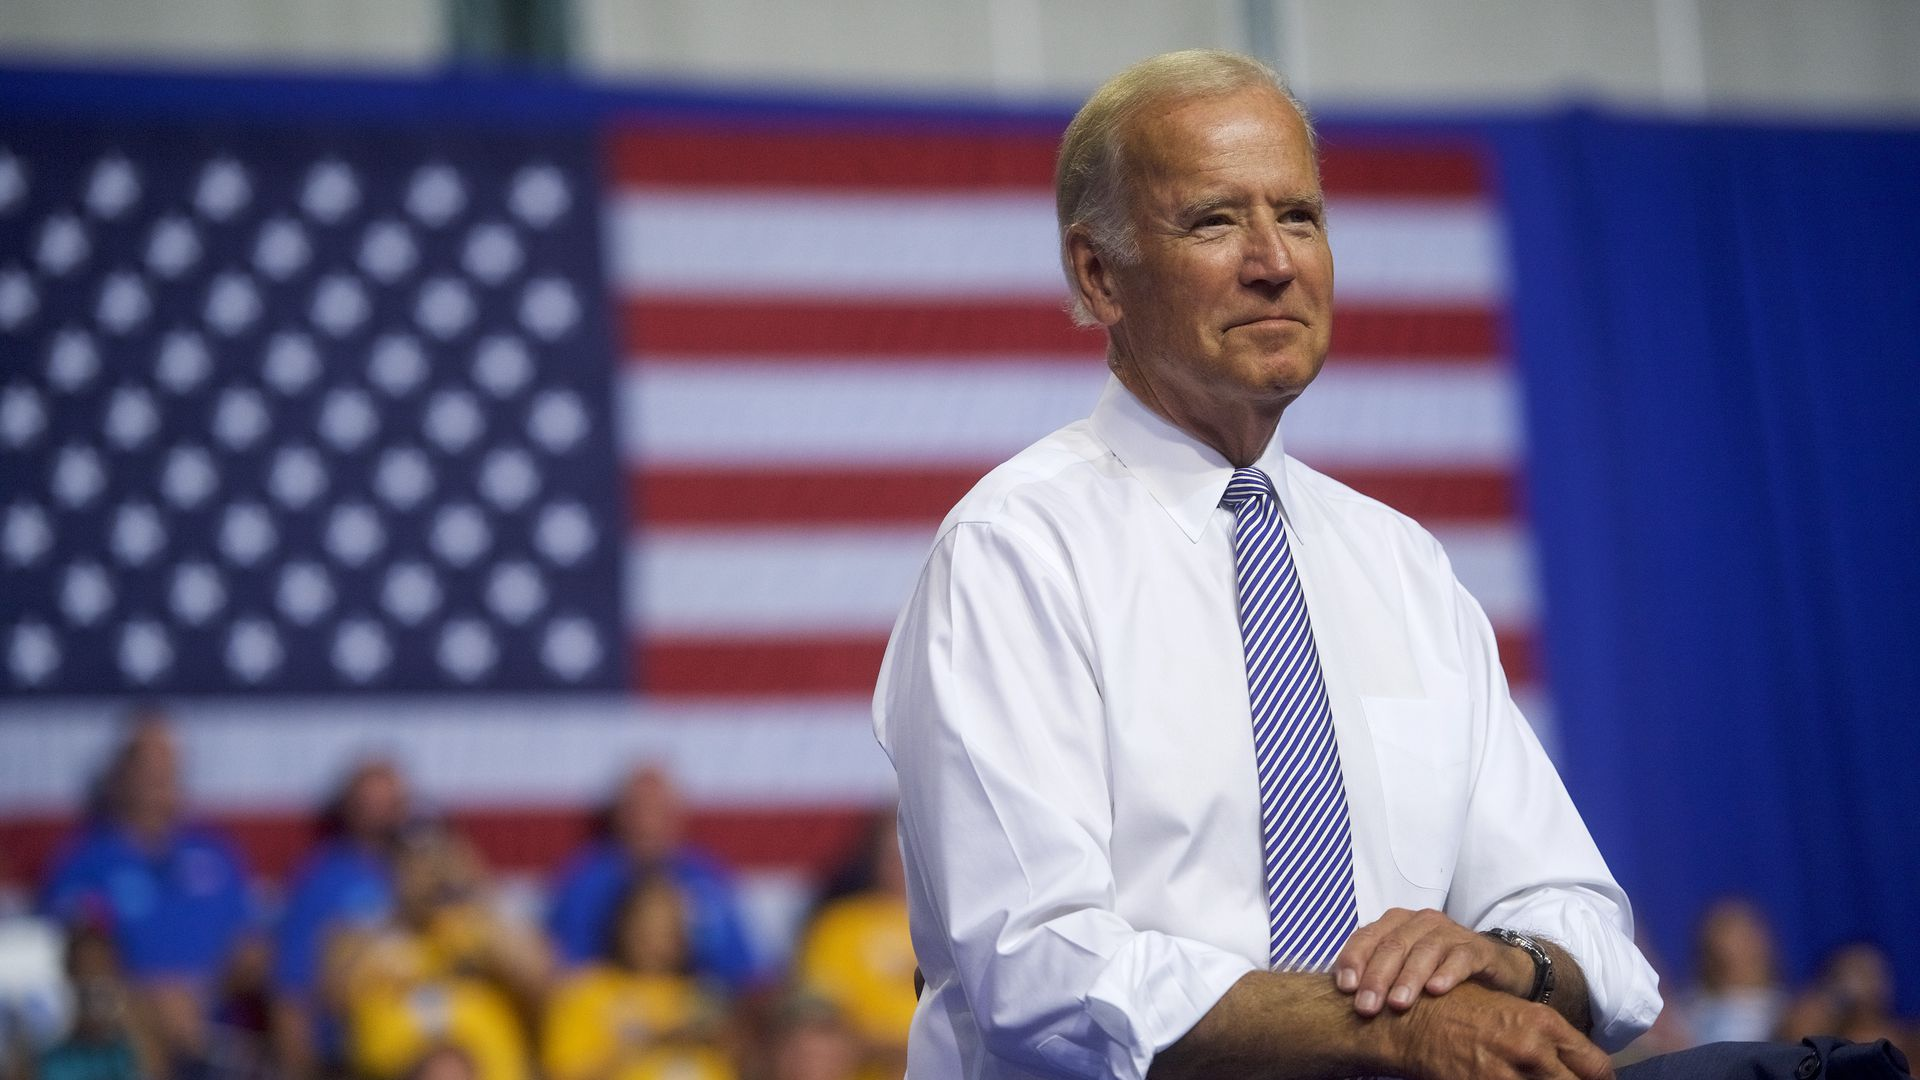 Biden Nears Victory After Proving His Majority In Pennsylvania